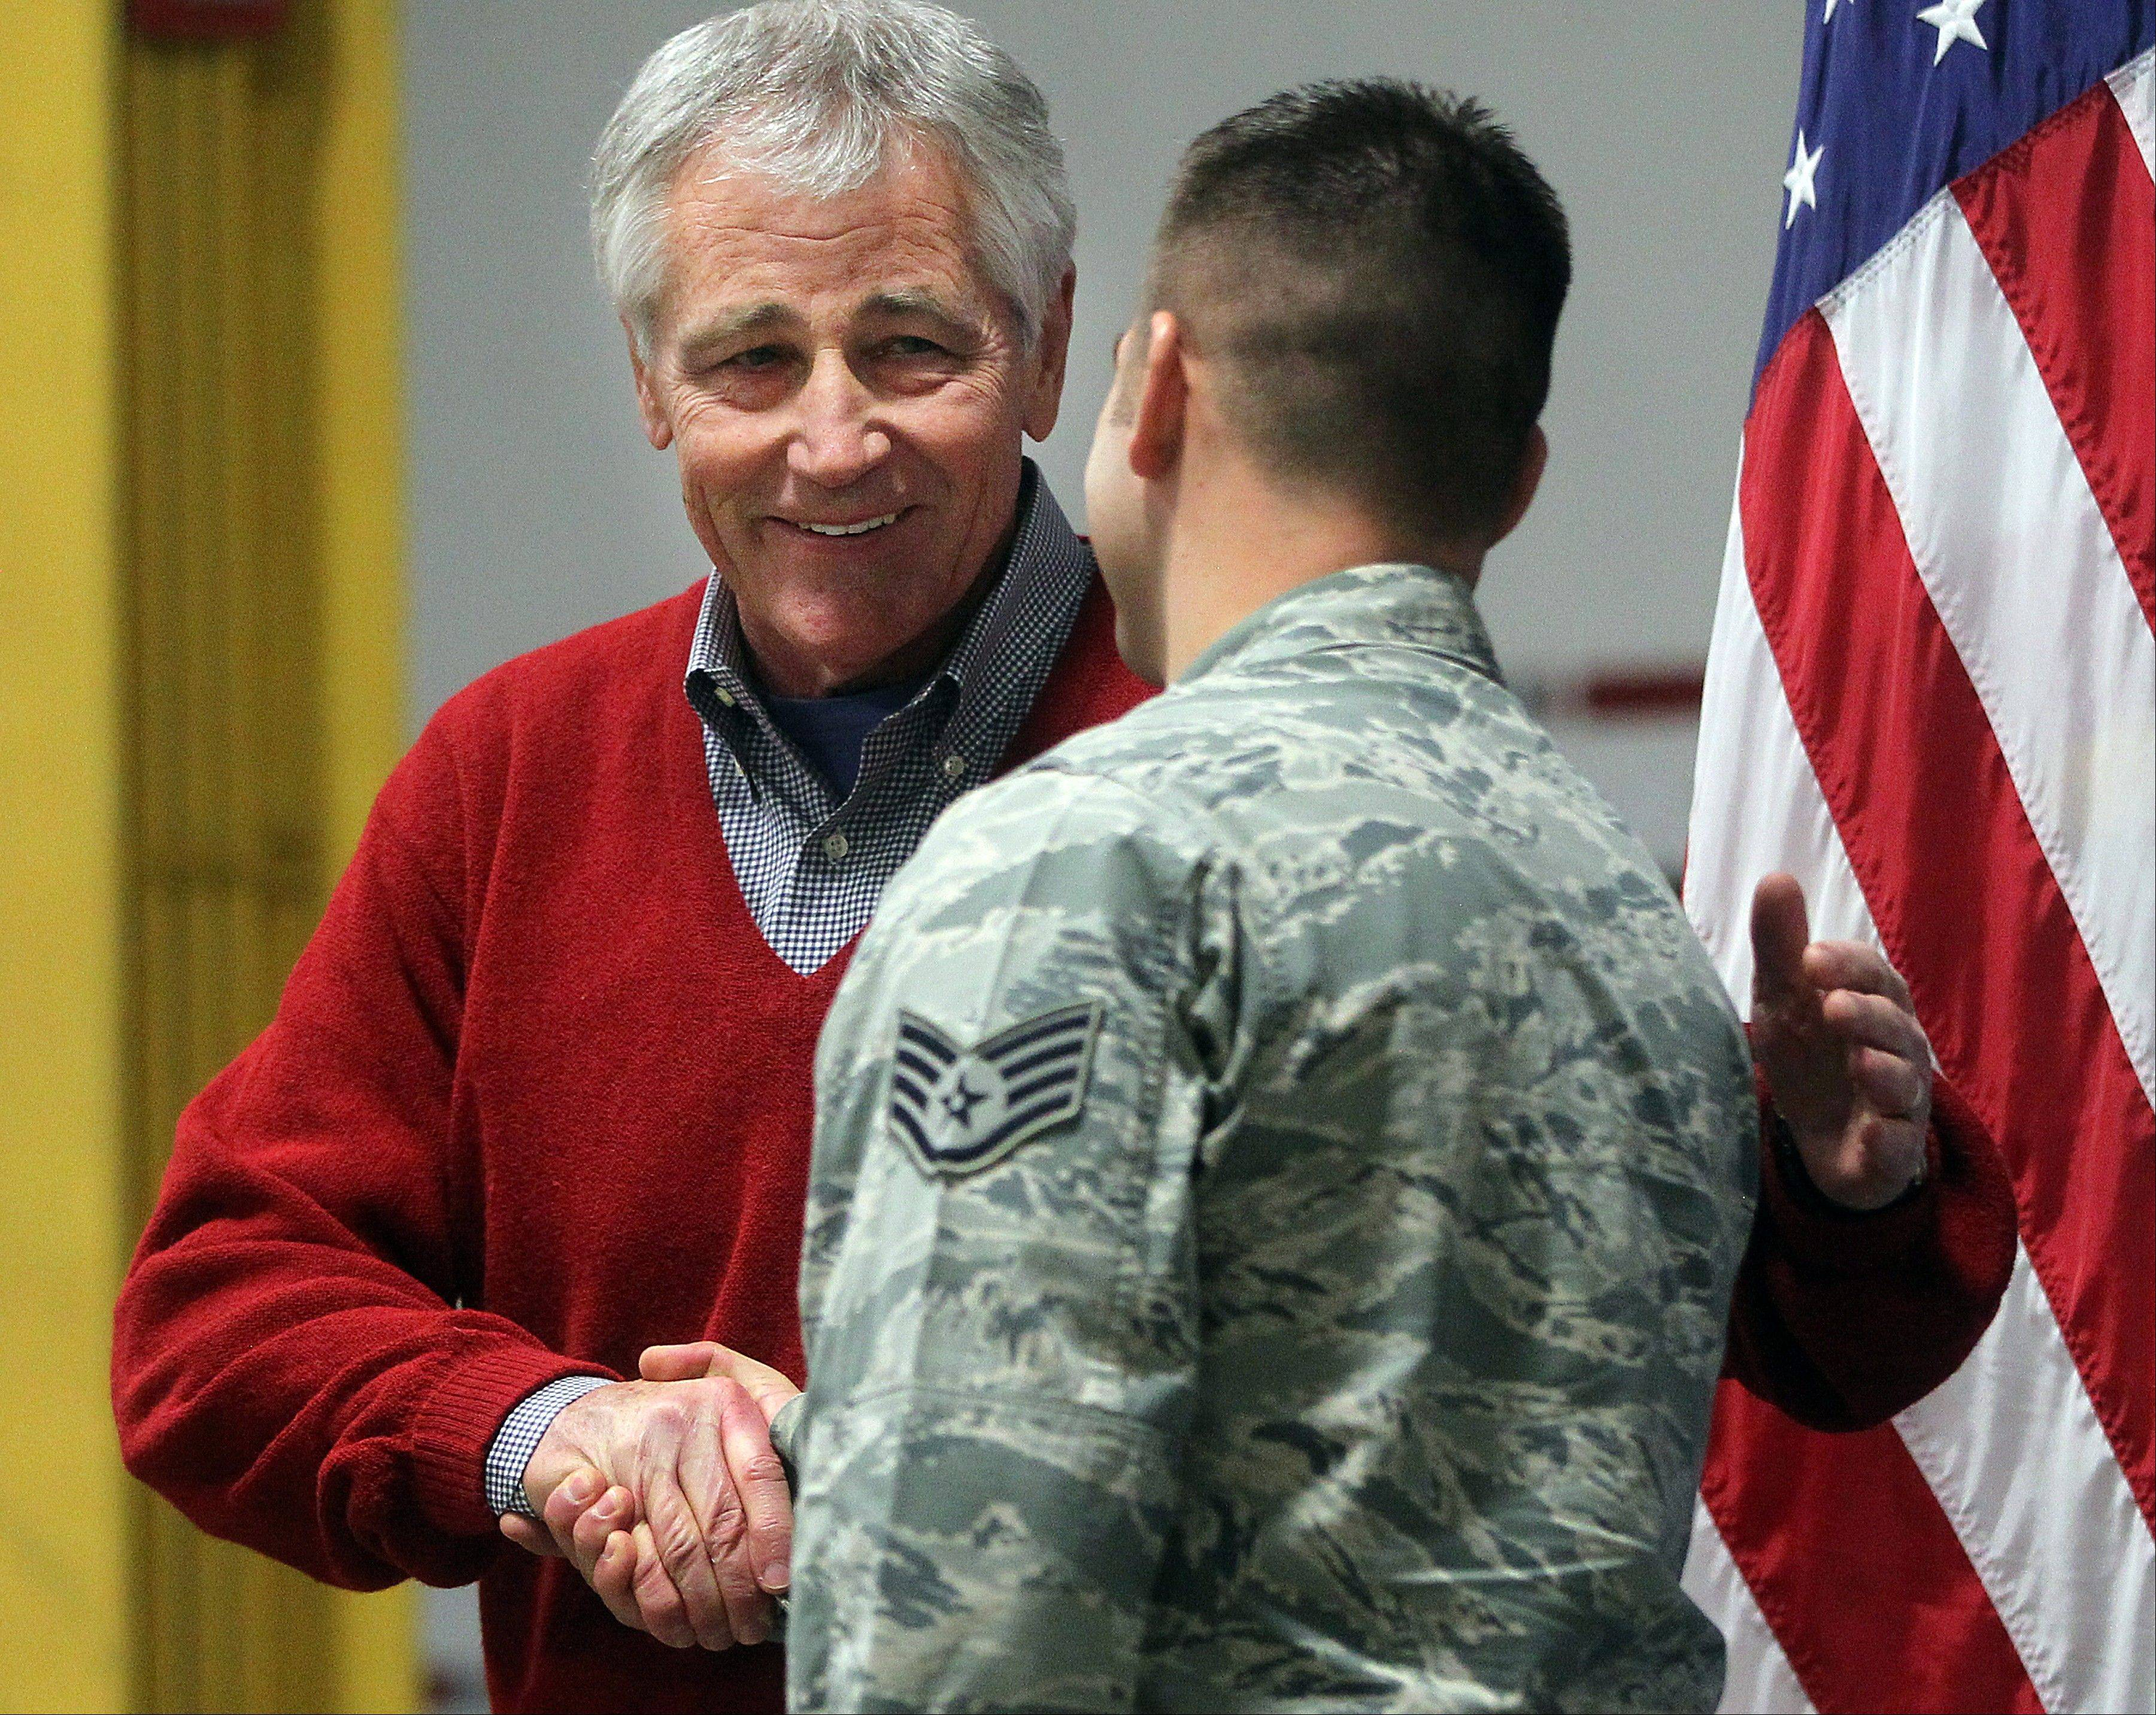 Defense Secretary Chuck Hagel greets an airman from the 20th Air Force 90th Missile Wing during a trip to F.E. Warren Air Force Base on Thursday, Jan. 9, 2014 in Cheyenne, Wyo.